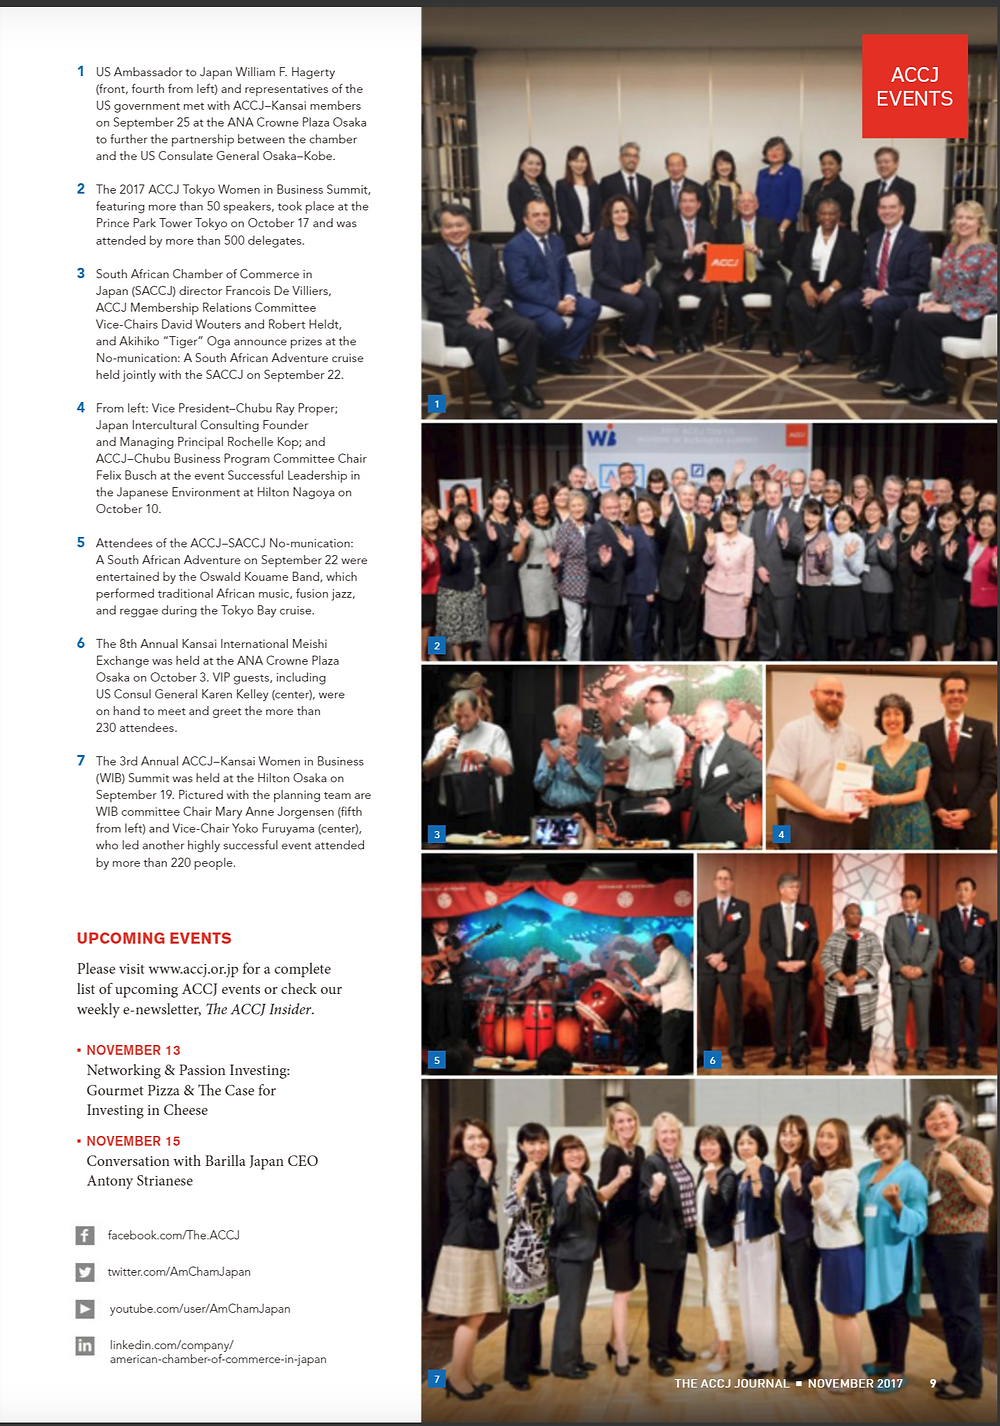 """ACCJ the Journal November 2017 - Page 9  2017 ACCJ Tokyo Women in Business Summit  Date: Tuesday, October 17, 2017 Time: 09:00 - 17:30 Registration opens 08:45; Doors open 09:00 Cocktail Reception 17:30 - 19:00  Venue: Prince Park Tower Tokyo Hosting Committee: Women in Business Committee  Event Overview: The theme of this year's ACCJ Tokyo Women in Business (WIB) Summit is """"breaking the mold."""" Come join us in our bid to provide practical solutions and advice on how to implement programs and policies that will, over time, lead to an increase in the number of women in management. For details, please see the ACCJ WIB Summit website here.  Speakers - Ms. Teiko Kudo, Managing Executive Officer, Deputy Head of Wholesale Banking Unit, Deputy Head of Financial Solution Unit, Growth Strategy Promotion Project Team, Sumitomo Mitsui Banking Corporation - Mr. Yoichi Miyamoto, Chairman of Shimizu Corporation - Dr. Denise Rutherford, President of 3M Japan Holdings G.K. and 3M Japan Limited; Chairman of 3M Japan Products Limited. Moderator - Mr. Makoto Kuwahara, Chief Country Officer, Deutsche Bank Group  Breakout session topics: ・ Building your brand: Creating a Memorable Professional Identity ・ Returning to the workforce: Changing Internal and External Perceptions ・ Ikuboss/Ikumen: How Diversity Benefits Men and Organizations Too ・ Inclusive leadership: Getting More out of Diversity ・ Ageless workforce: Profile of an Employee c2030 ・ Inequality in HR systems: How Not to Maintain the Status Quo ・ Workstyle reform: Turning a Future Vision into Current Reality ・ Entrepreneurship: Redefining Personal Success ・ Leveraging inclusion for innovation: How Diversity Benefits Your Business Too  Training sessions: ・ Managing Unconscious Bias  ・ Getting What You Need in the Workplace  This event is expected to fill up extremely quickly, so please be sure to register early. Please note that breakout sessions will be unassigned, and seats for each session will be available on a first-come, fi"""